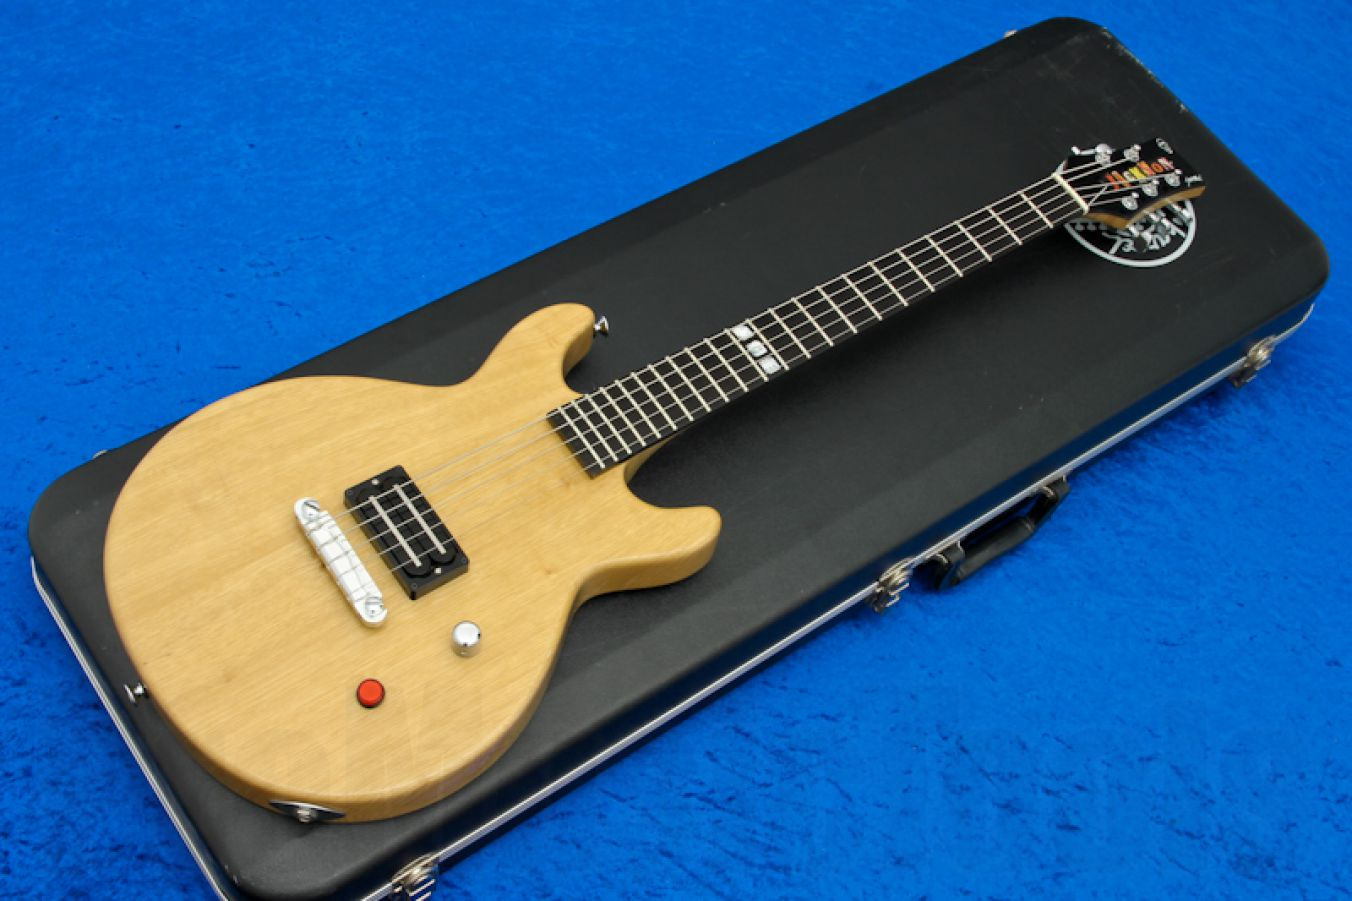 Jackson USA Custom Shop JJ5 - Korina Neck-Thru (5-string guitar)